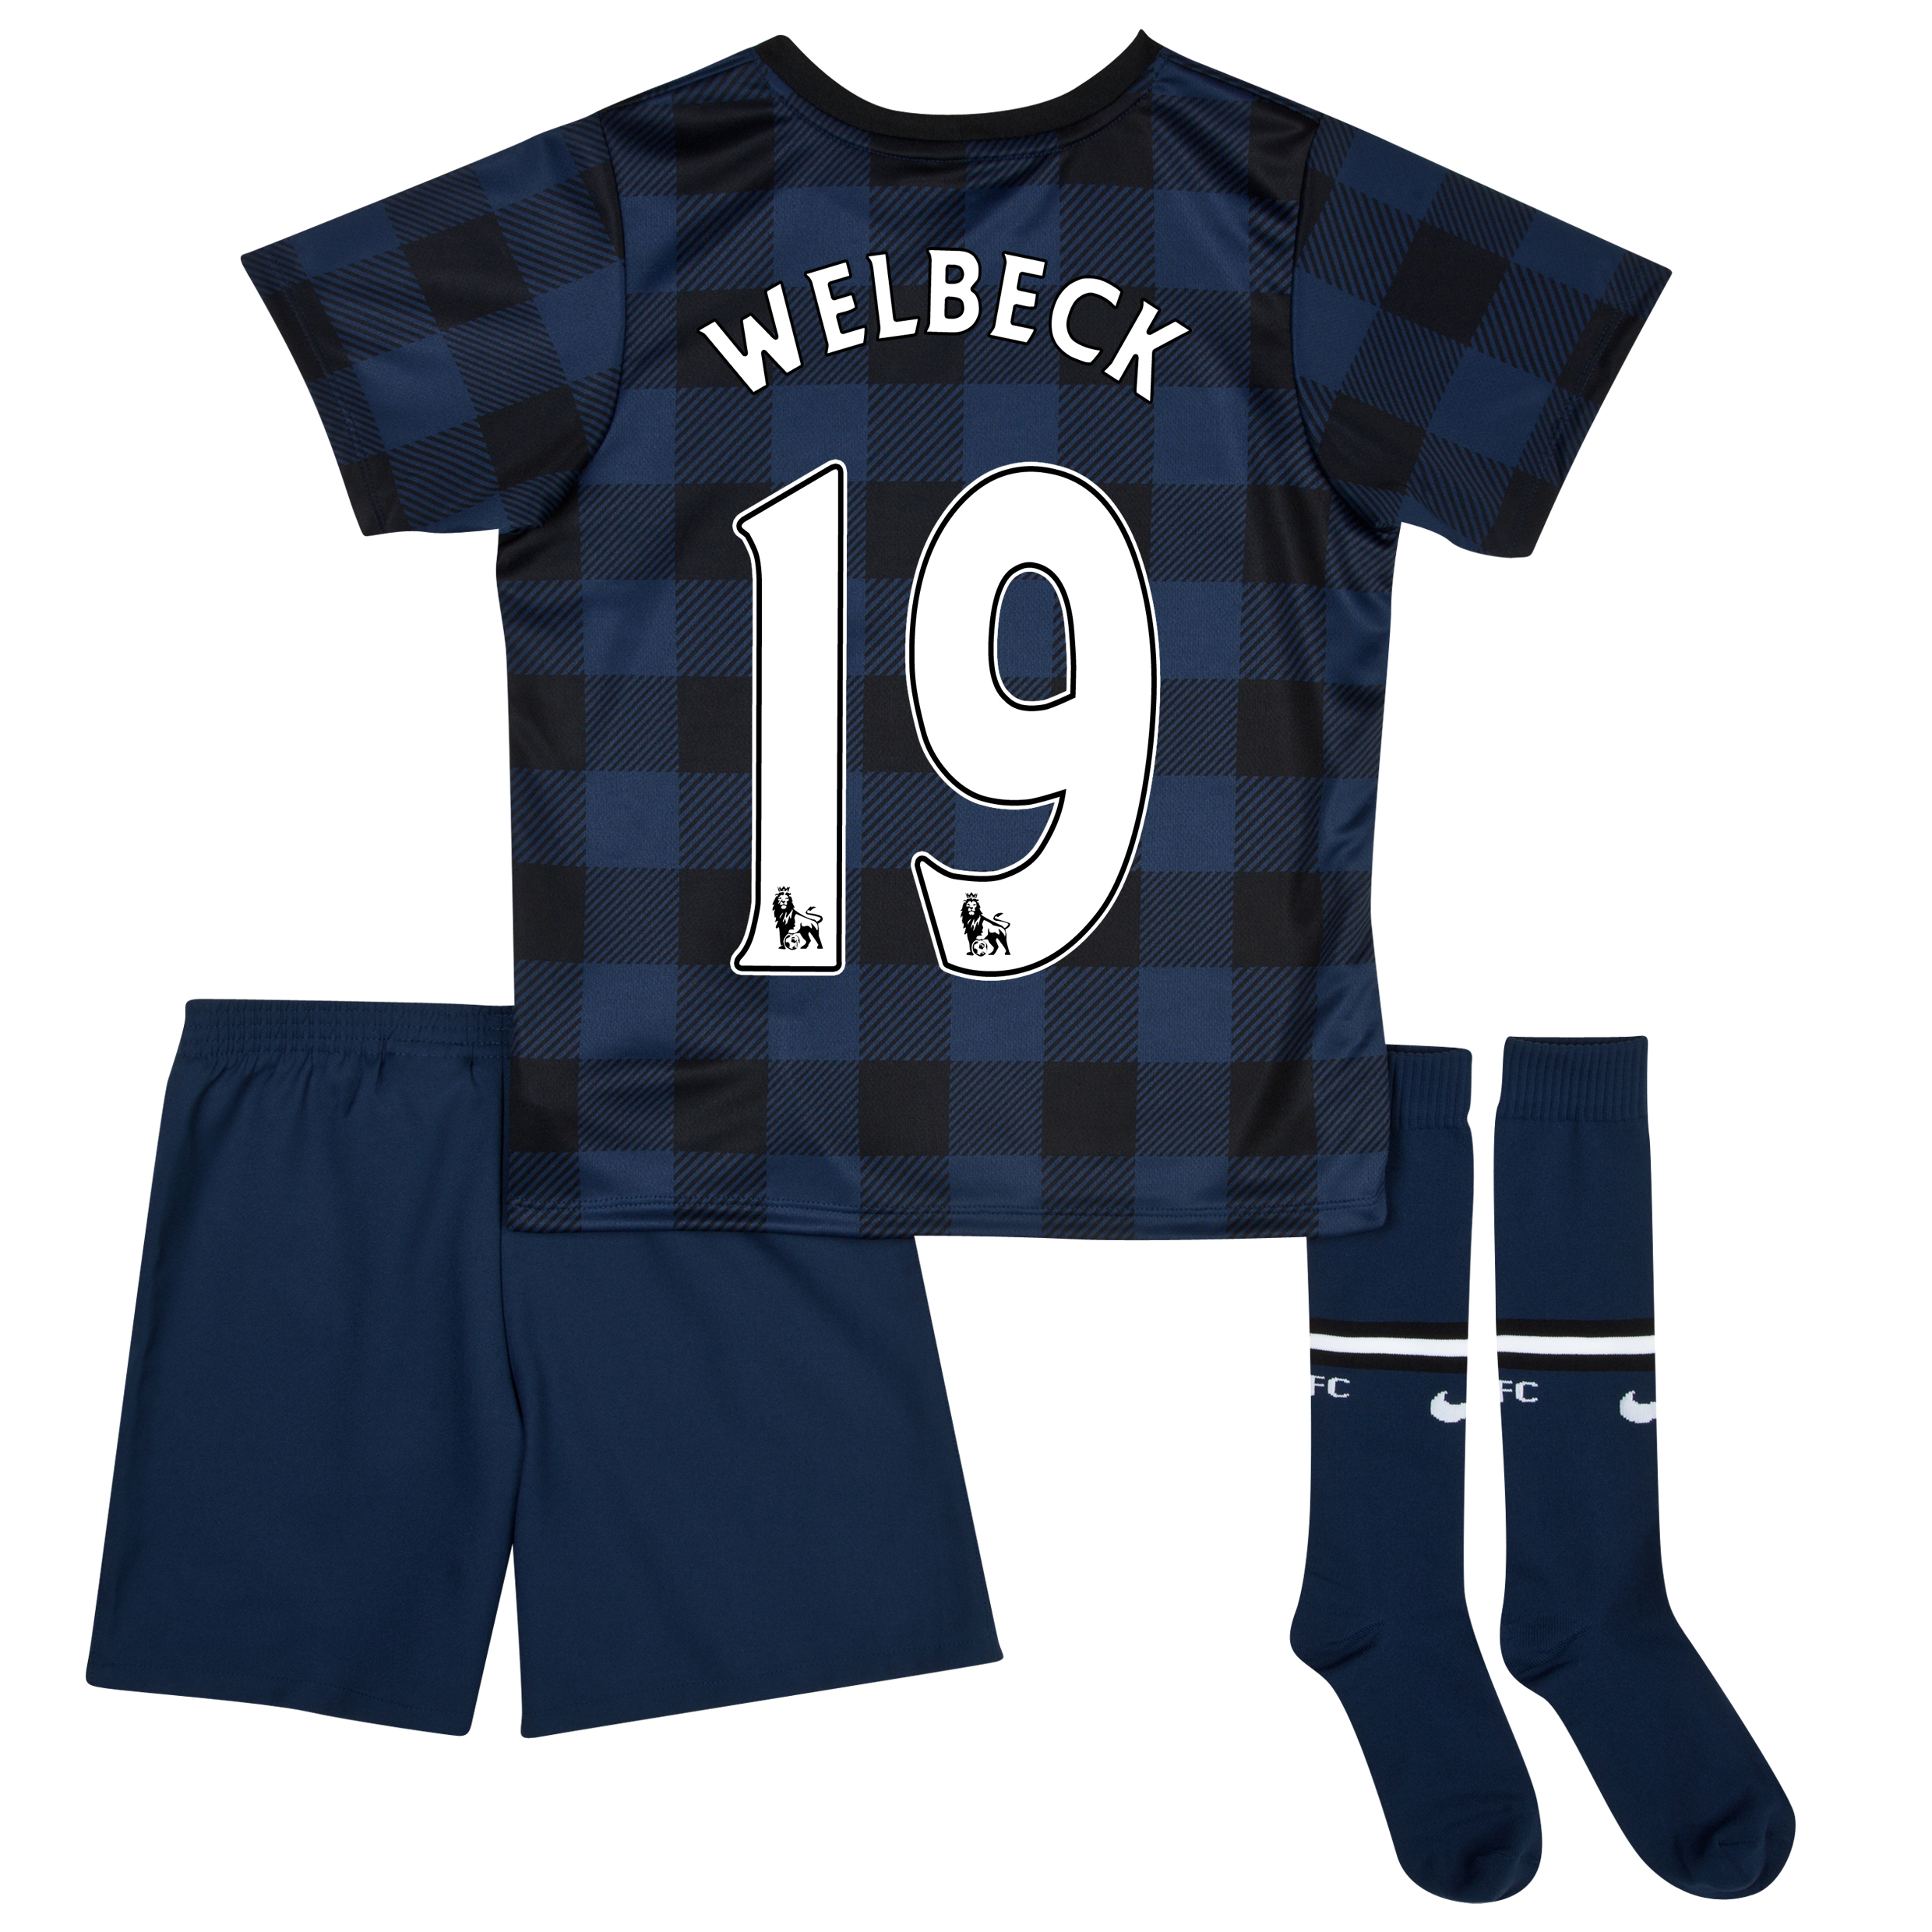 Manchester United Away Kit 2013/14 - Little Boys with Welbeck 19 printing